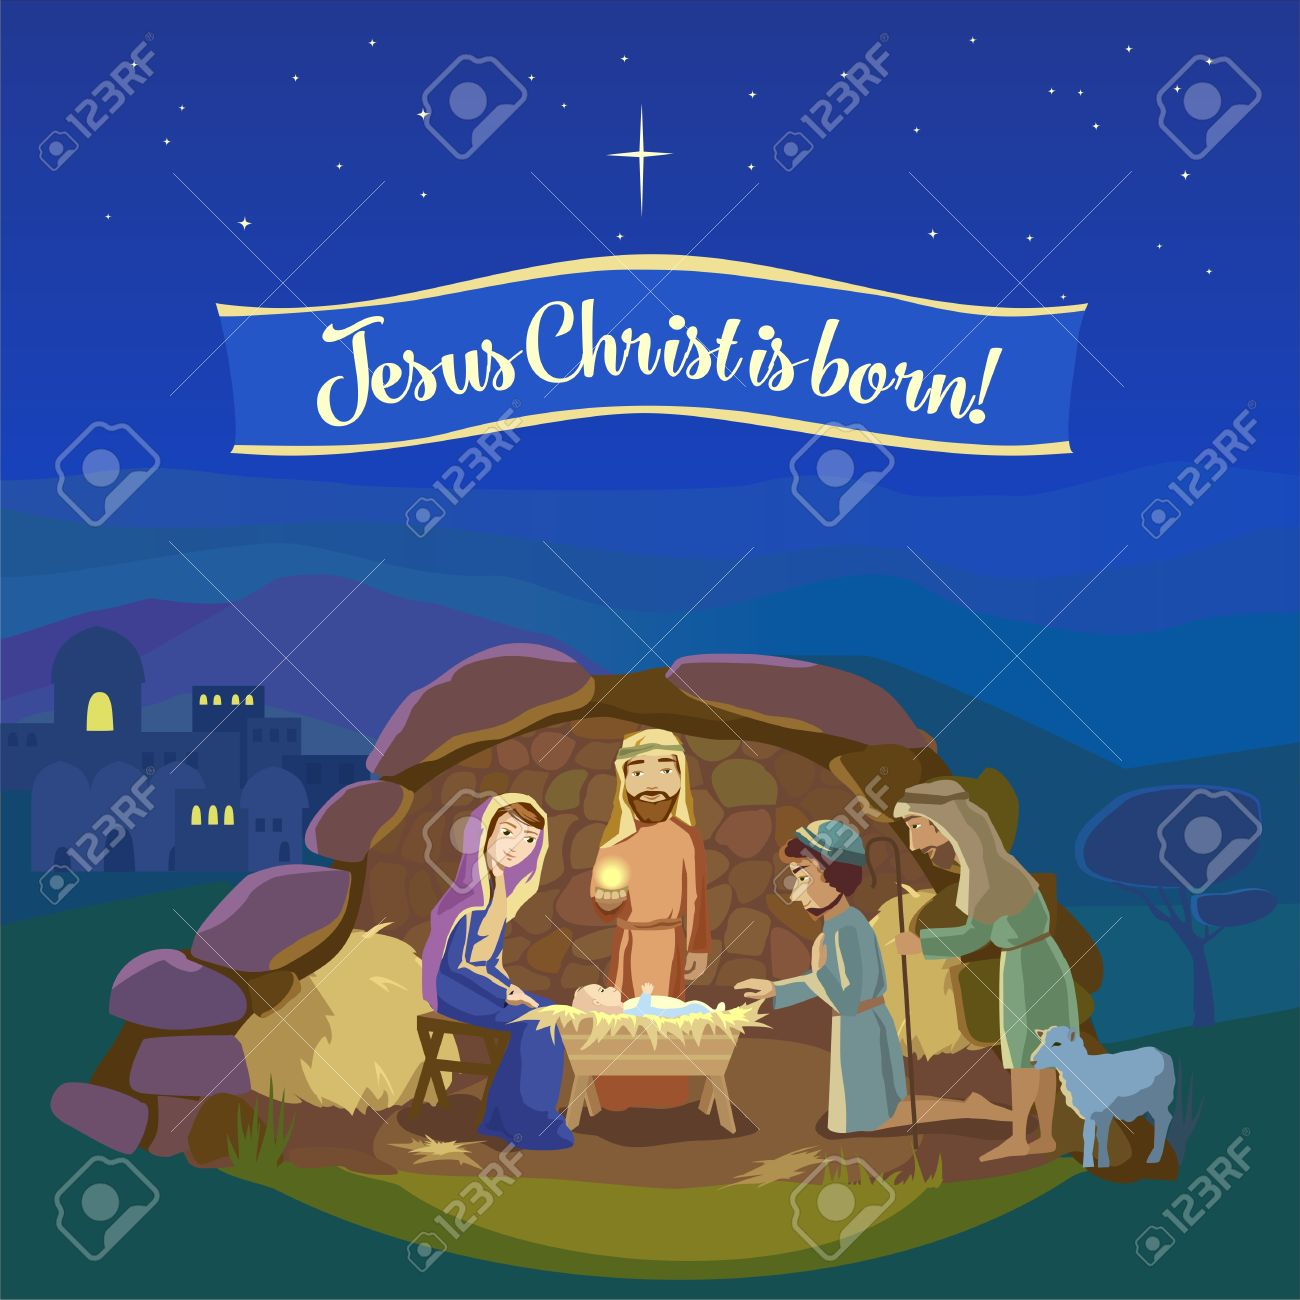 Christmas night. Birth of Jesus Christ in Bethlehem. Josef, Mary and the Baby in the manger. Shepherds came to worship the King. - 48929798